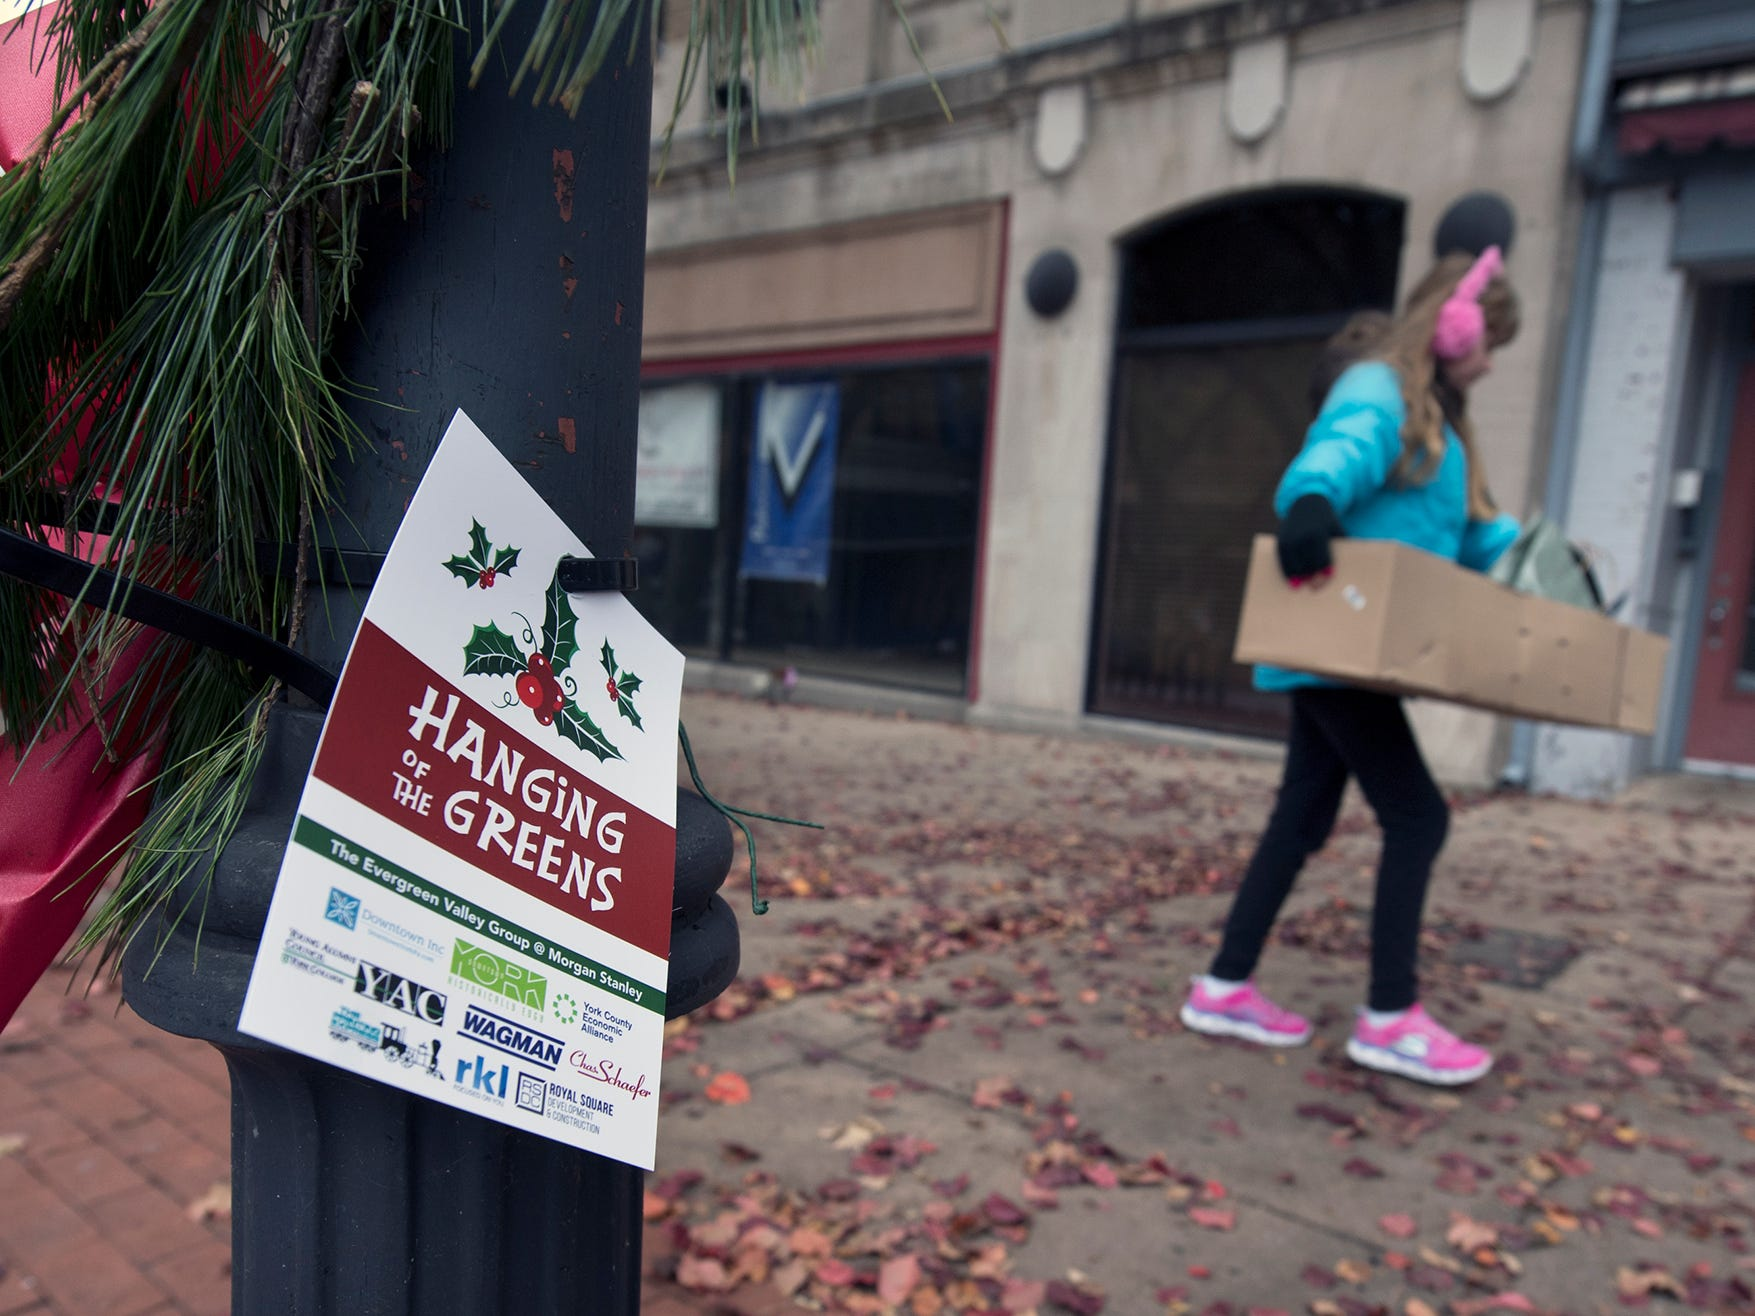 Kaylanna White, 11, carries a box of greens to the next light post during the Hanging of the Greens around Continental Square in York Sunday November 18, 2018.